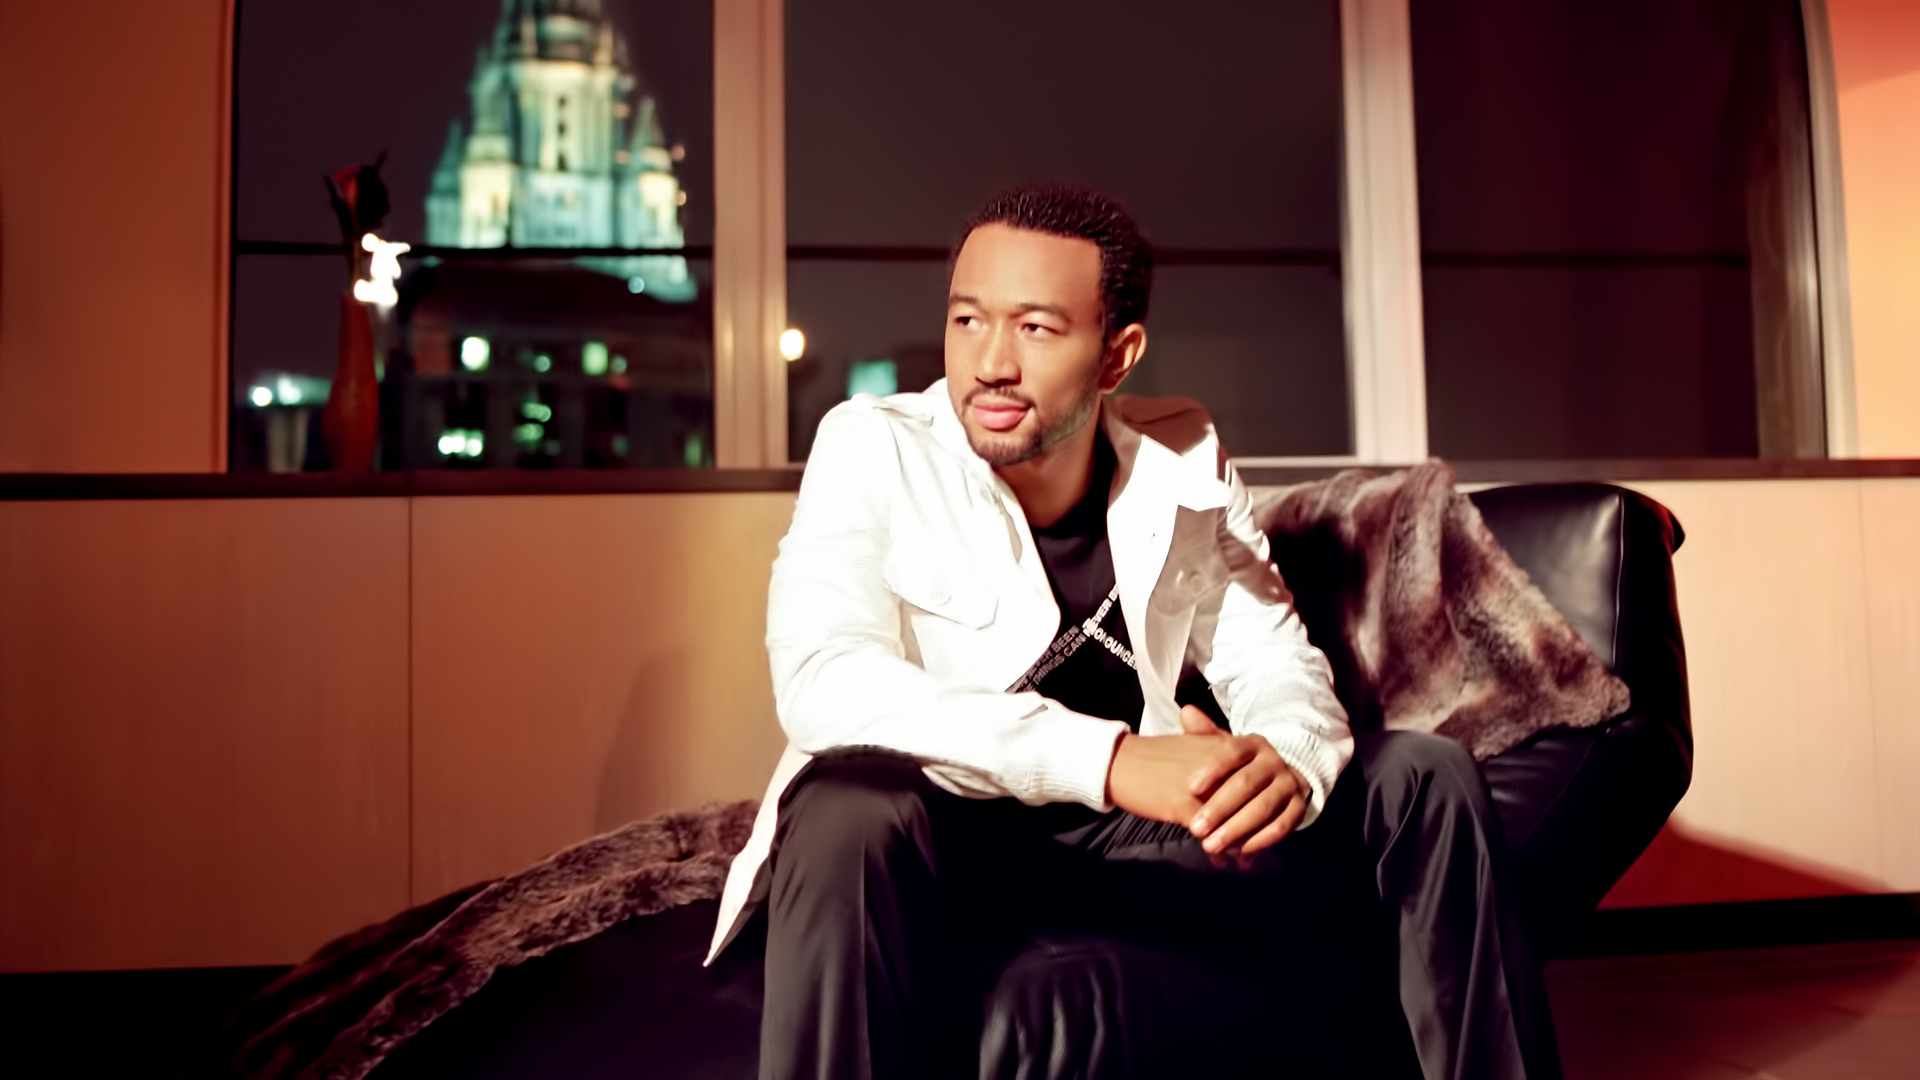 Love Me Now av John Legend